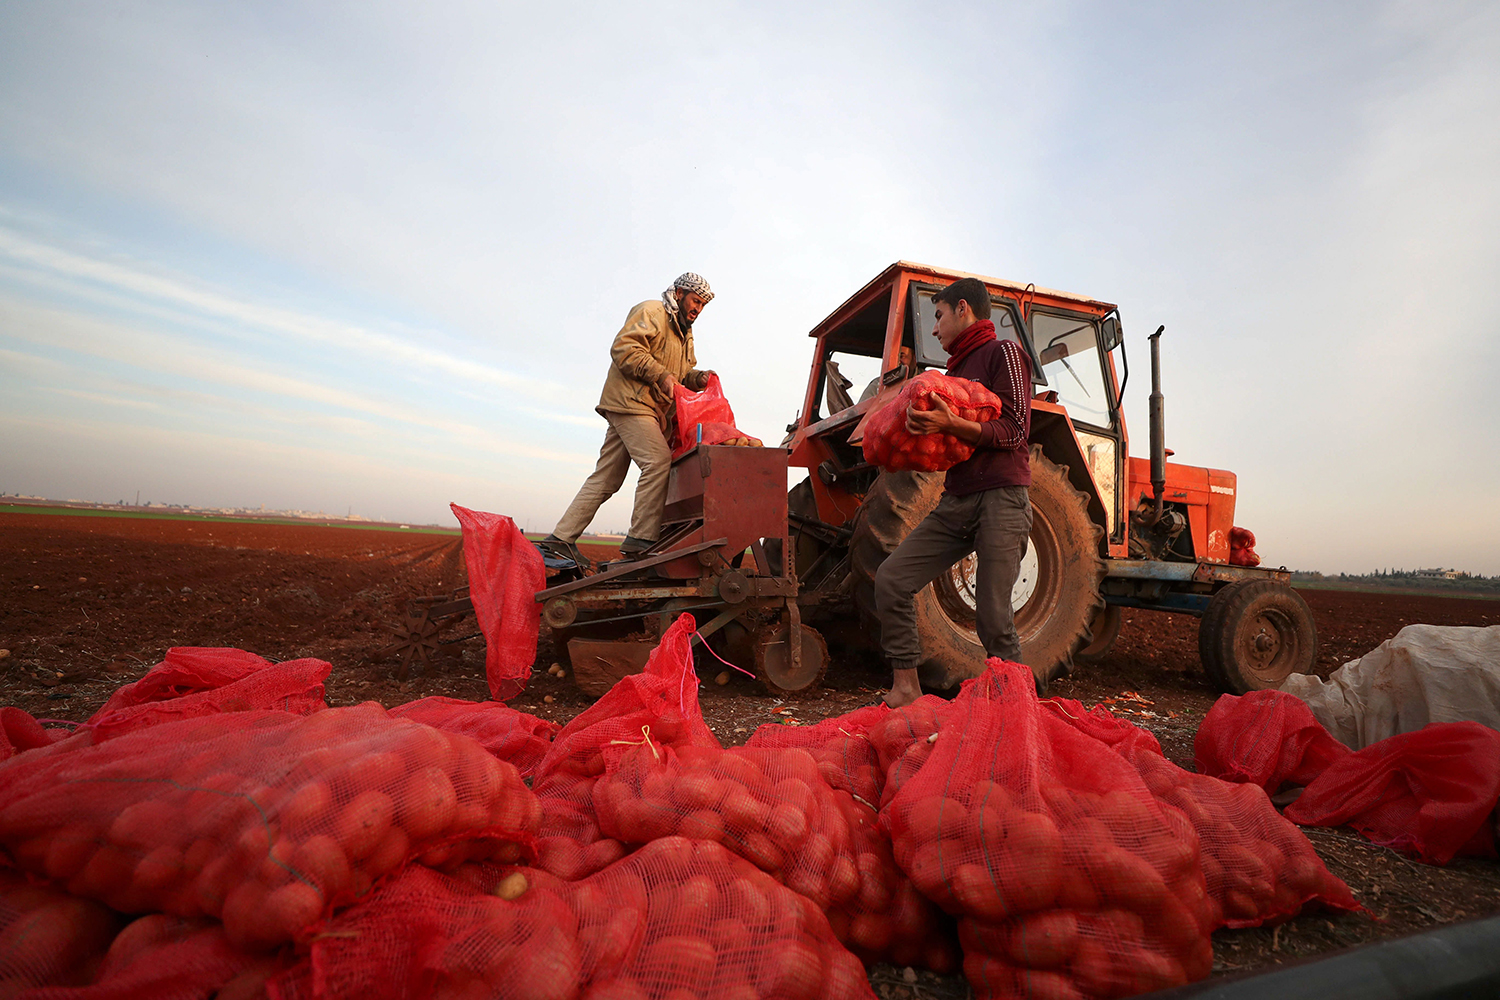 A Syrian farmer fills a tractor with potatoes before planting begins near the town of Binnish in Syria's northwestern Idlib province on Jan. 12.